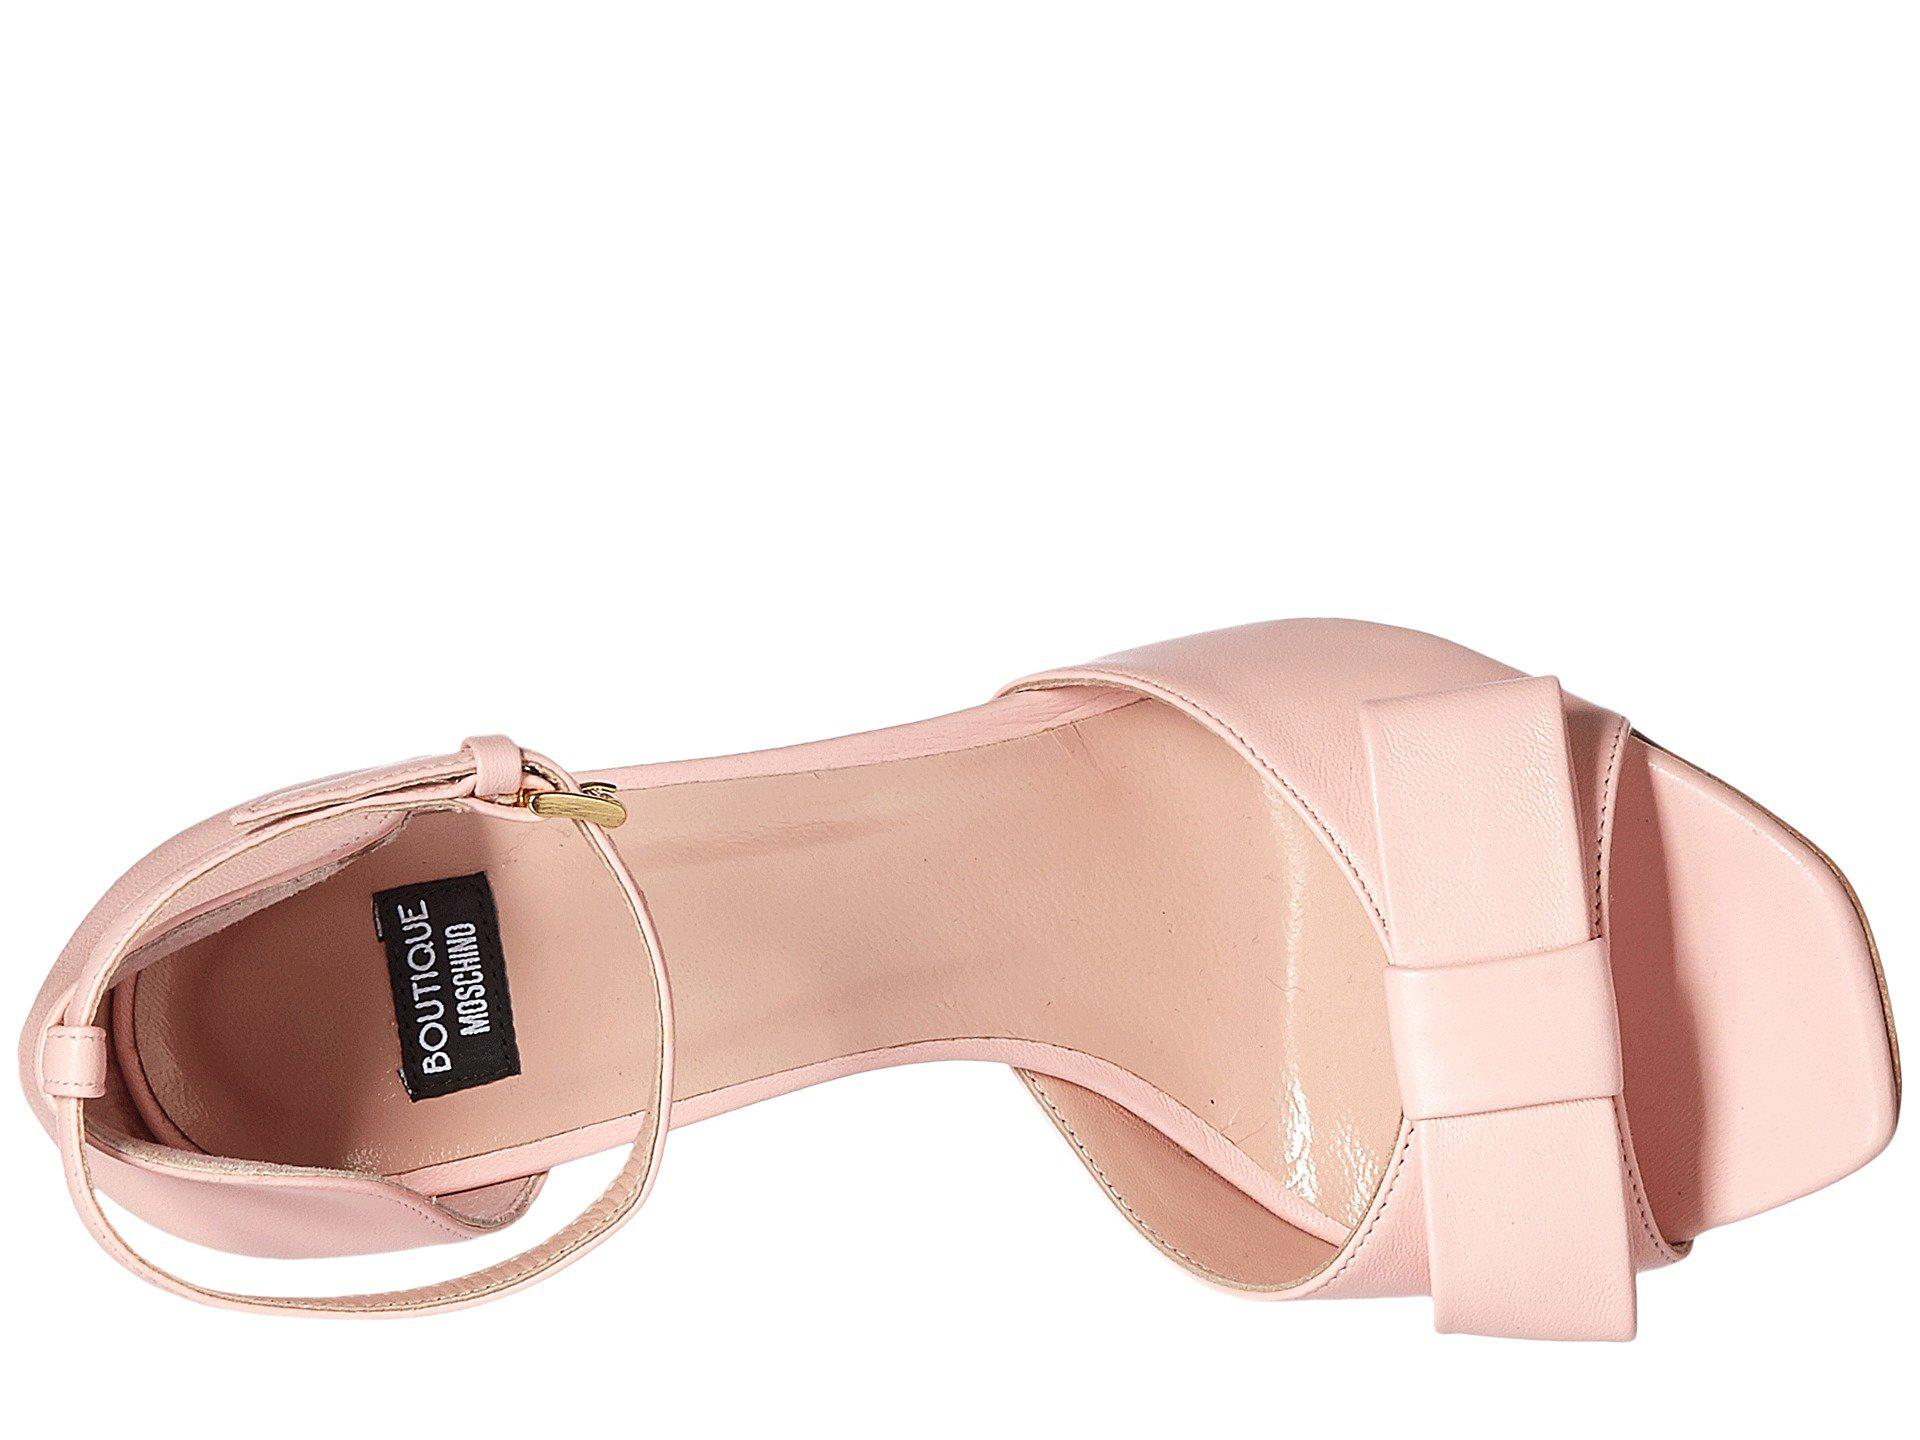 Ankle Strap Heel with Bow Boutique Moschino qVlyfaokT4